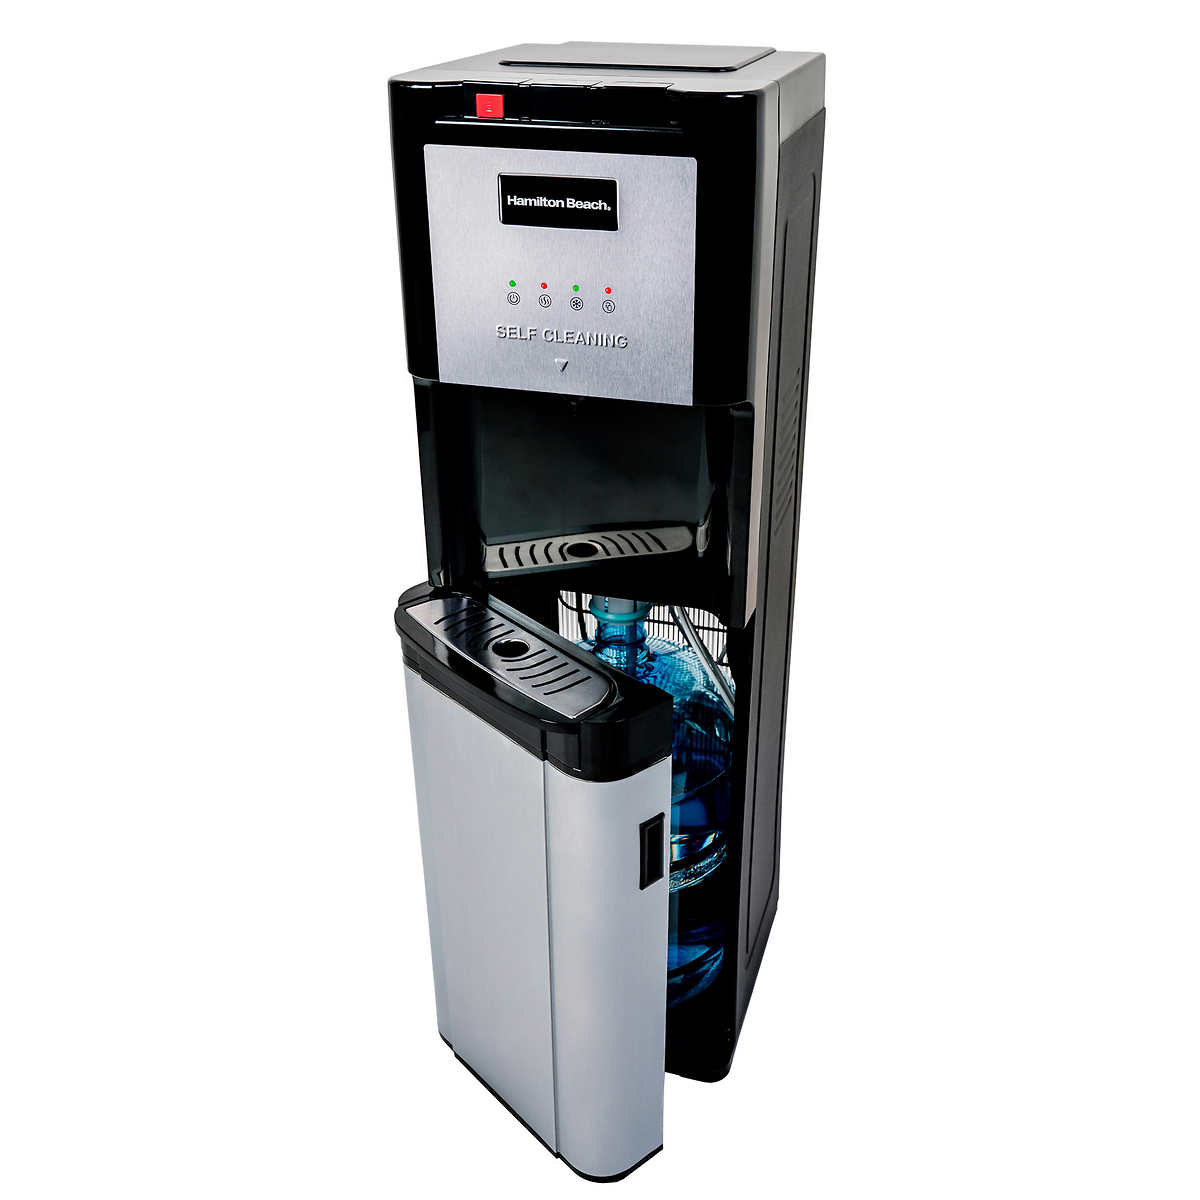 Hot And Cold Water Cooler Dispenser Hamilton Beach Commercial Grade Hot Cold Top Loading Water Dispenser